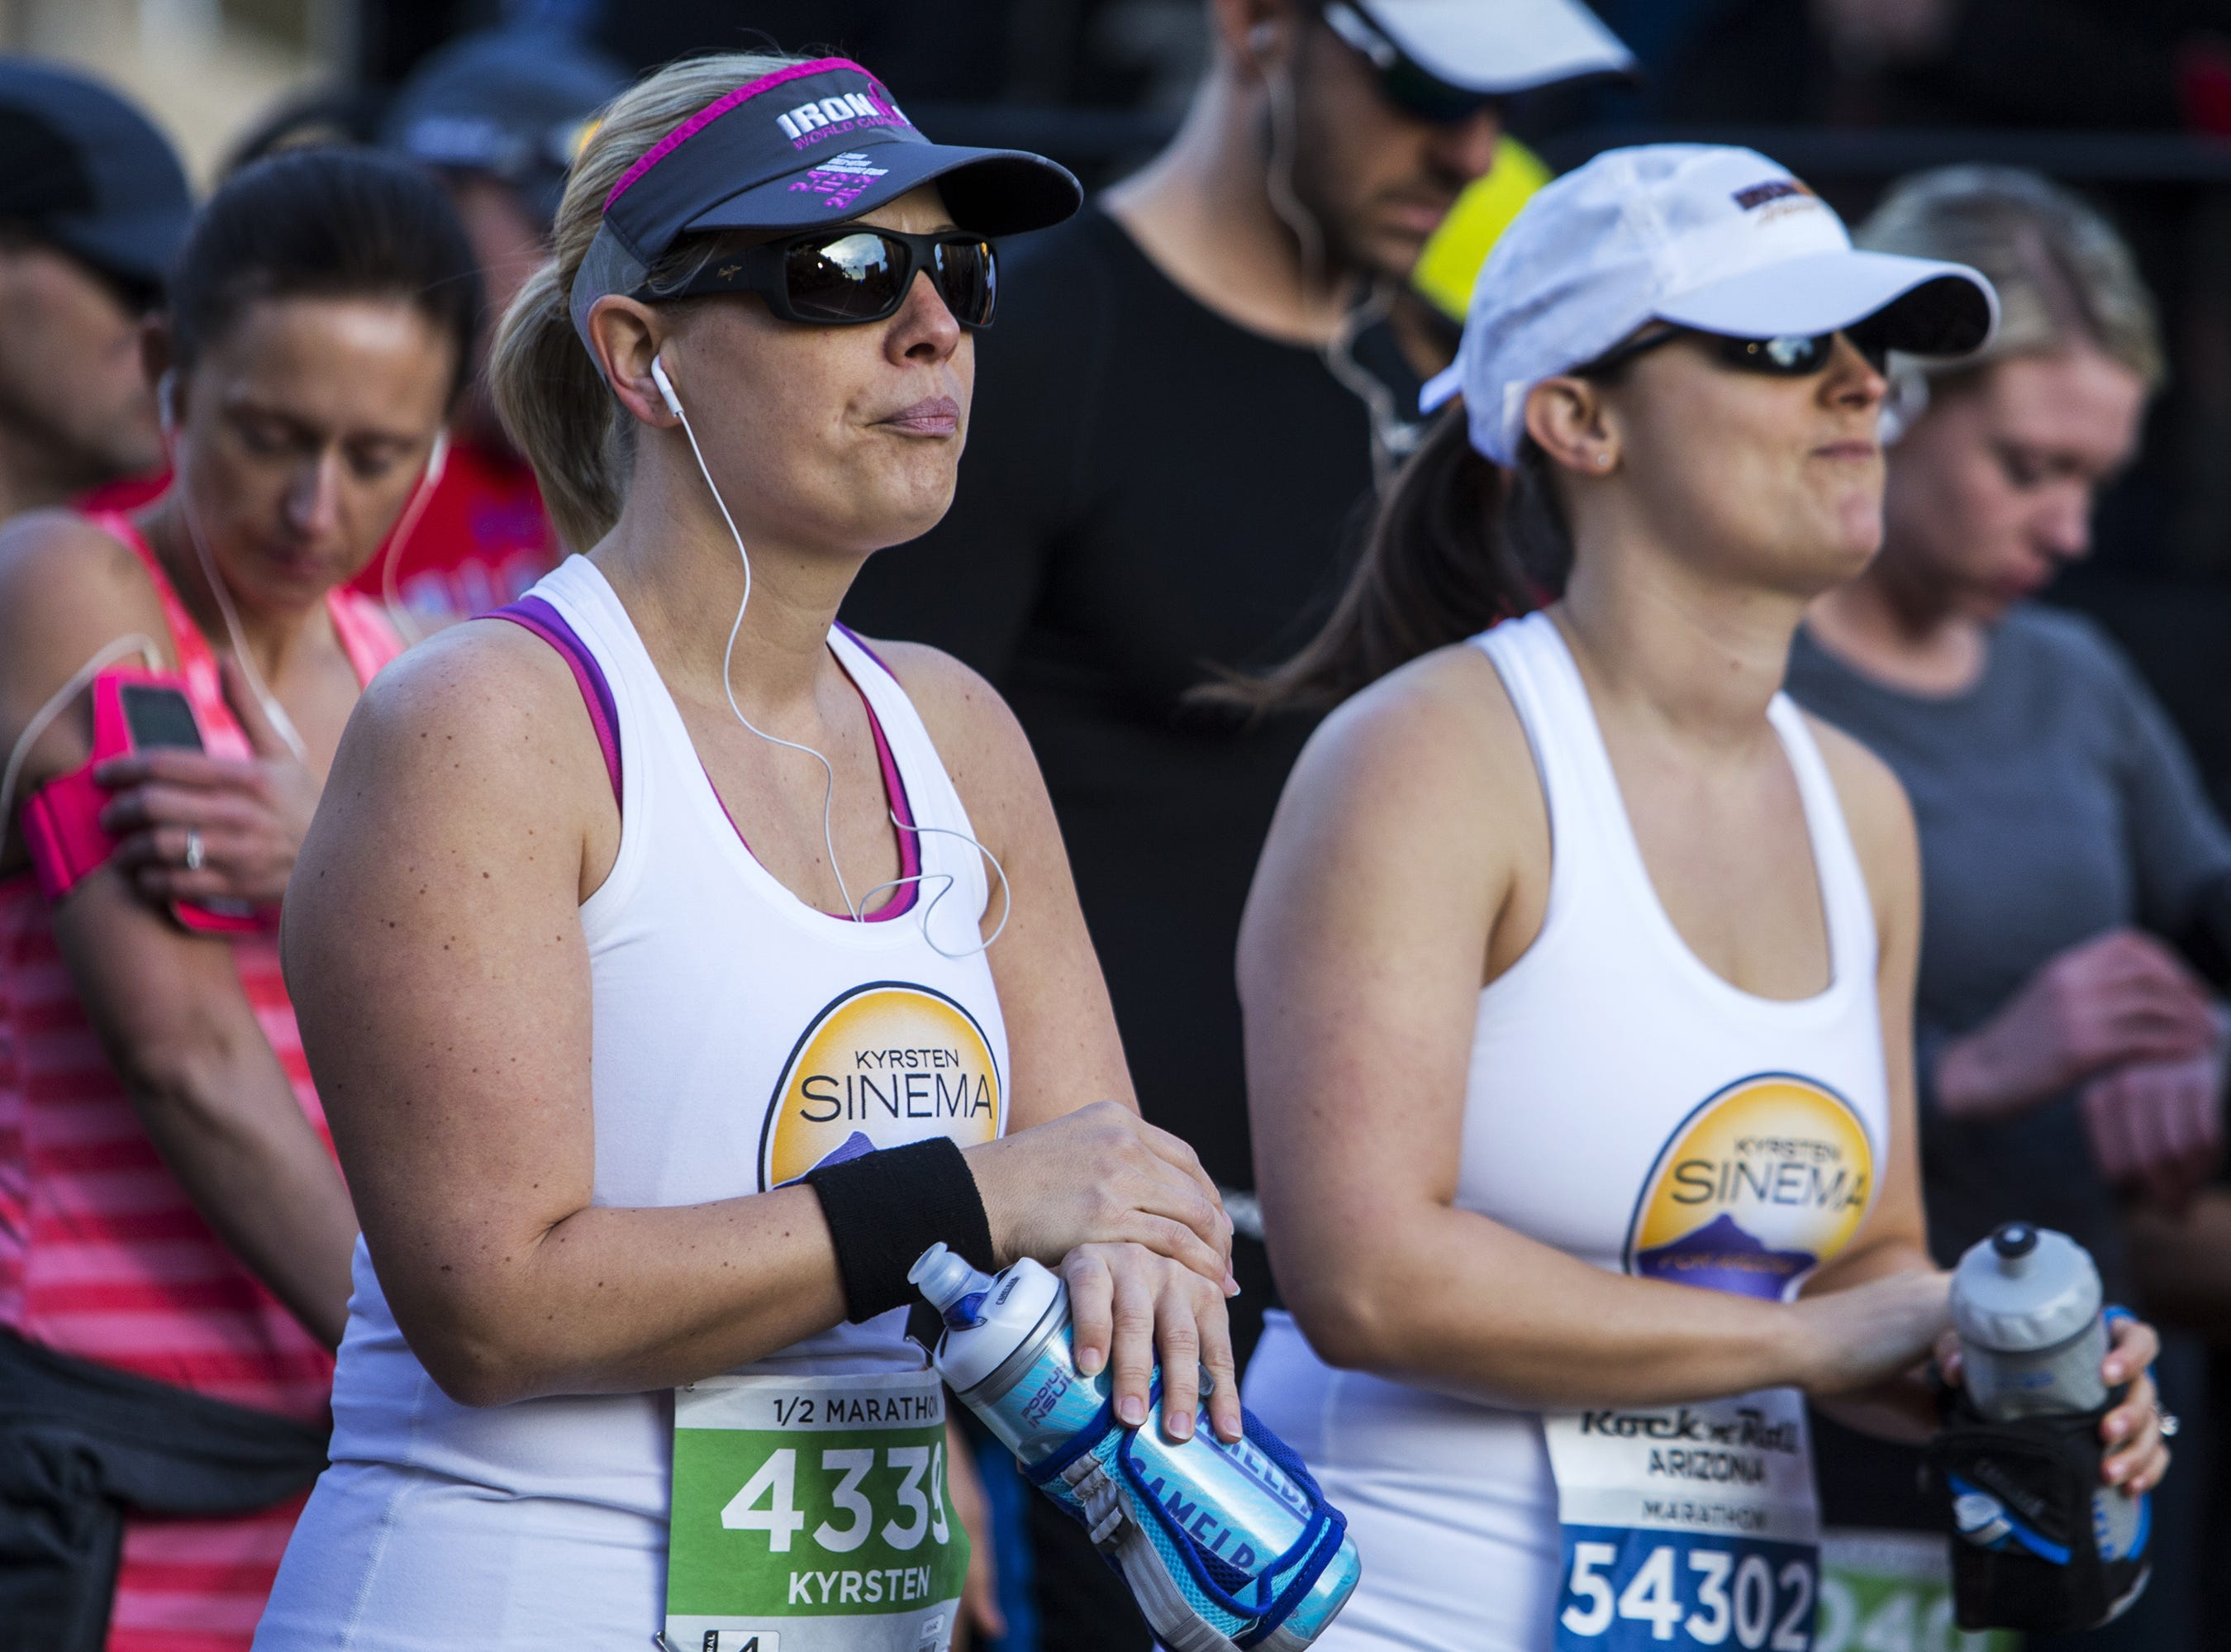 Rep. Kyrsten Sinema, D-Ariz., waits Jan. 14, 2018, at the half marathon and 10K starting line before the Synchrony Financial Rock 'n' Roll Arizona Marathon & Half Marathon on in Tempe.